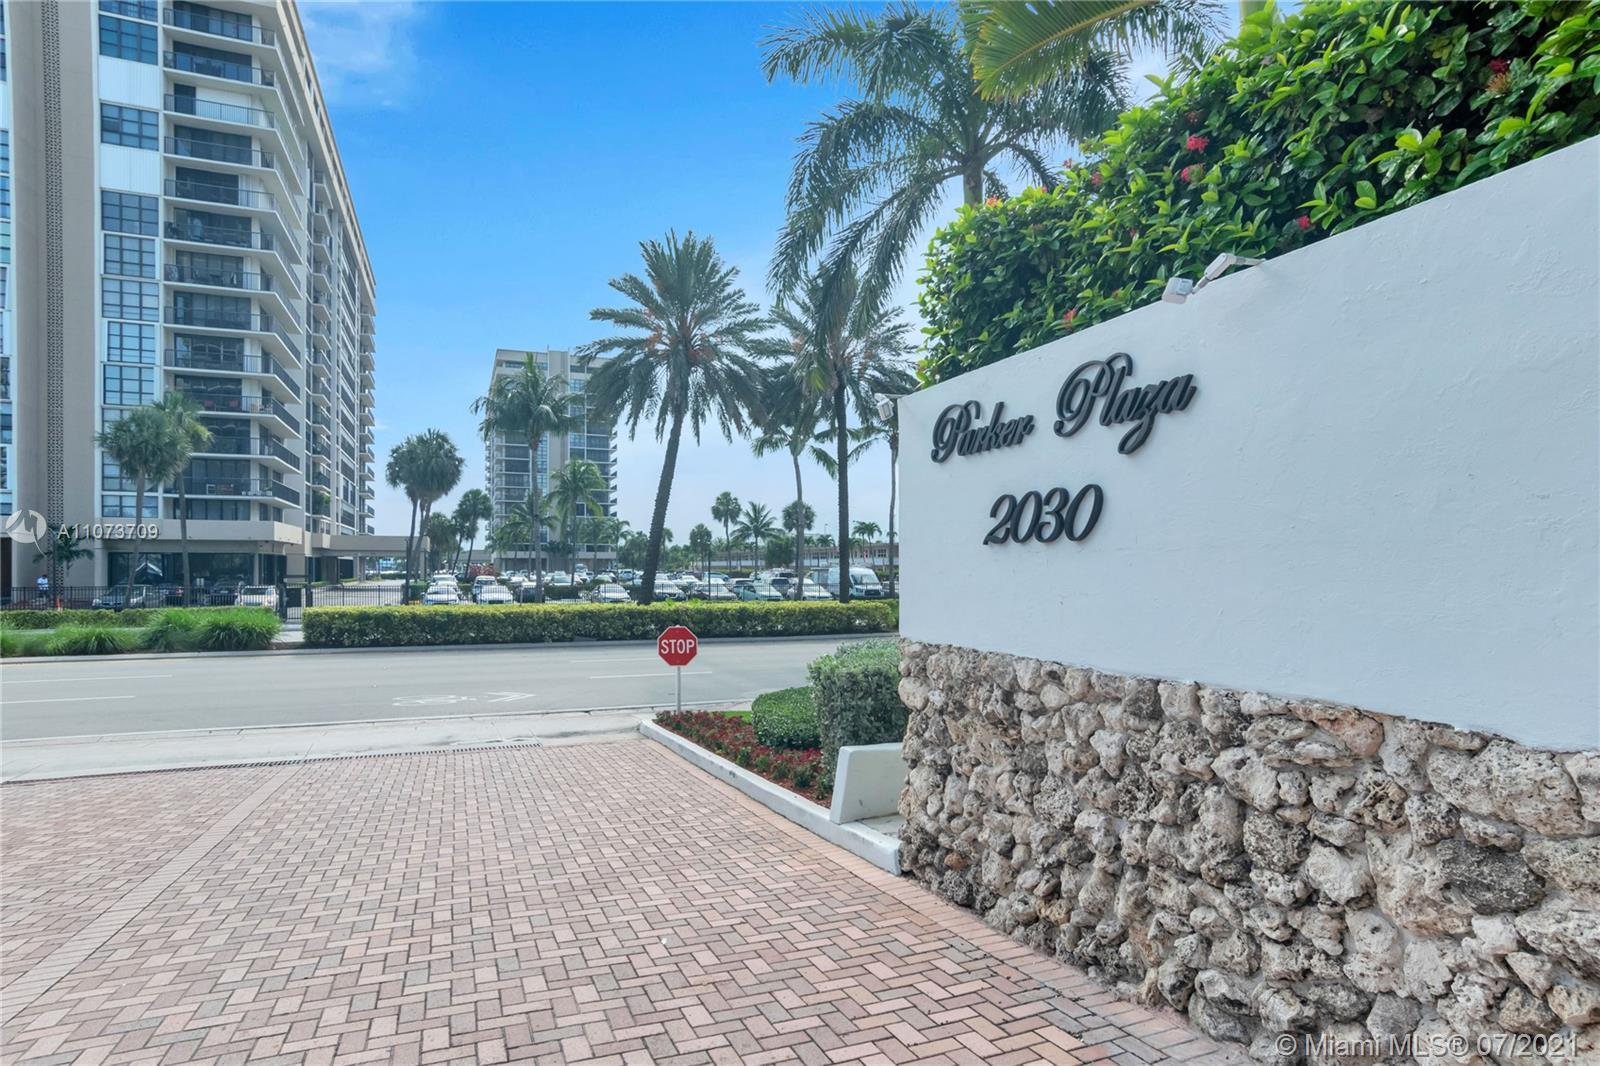 GORGEOUS UPGRADED 2/2 CONDO, MASTER SUITE HAS 2 WALKING CLOSETS. CROWN MOLDINGS, IMPACT GLASS WINDOW